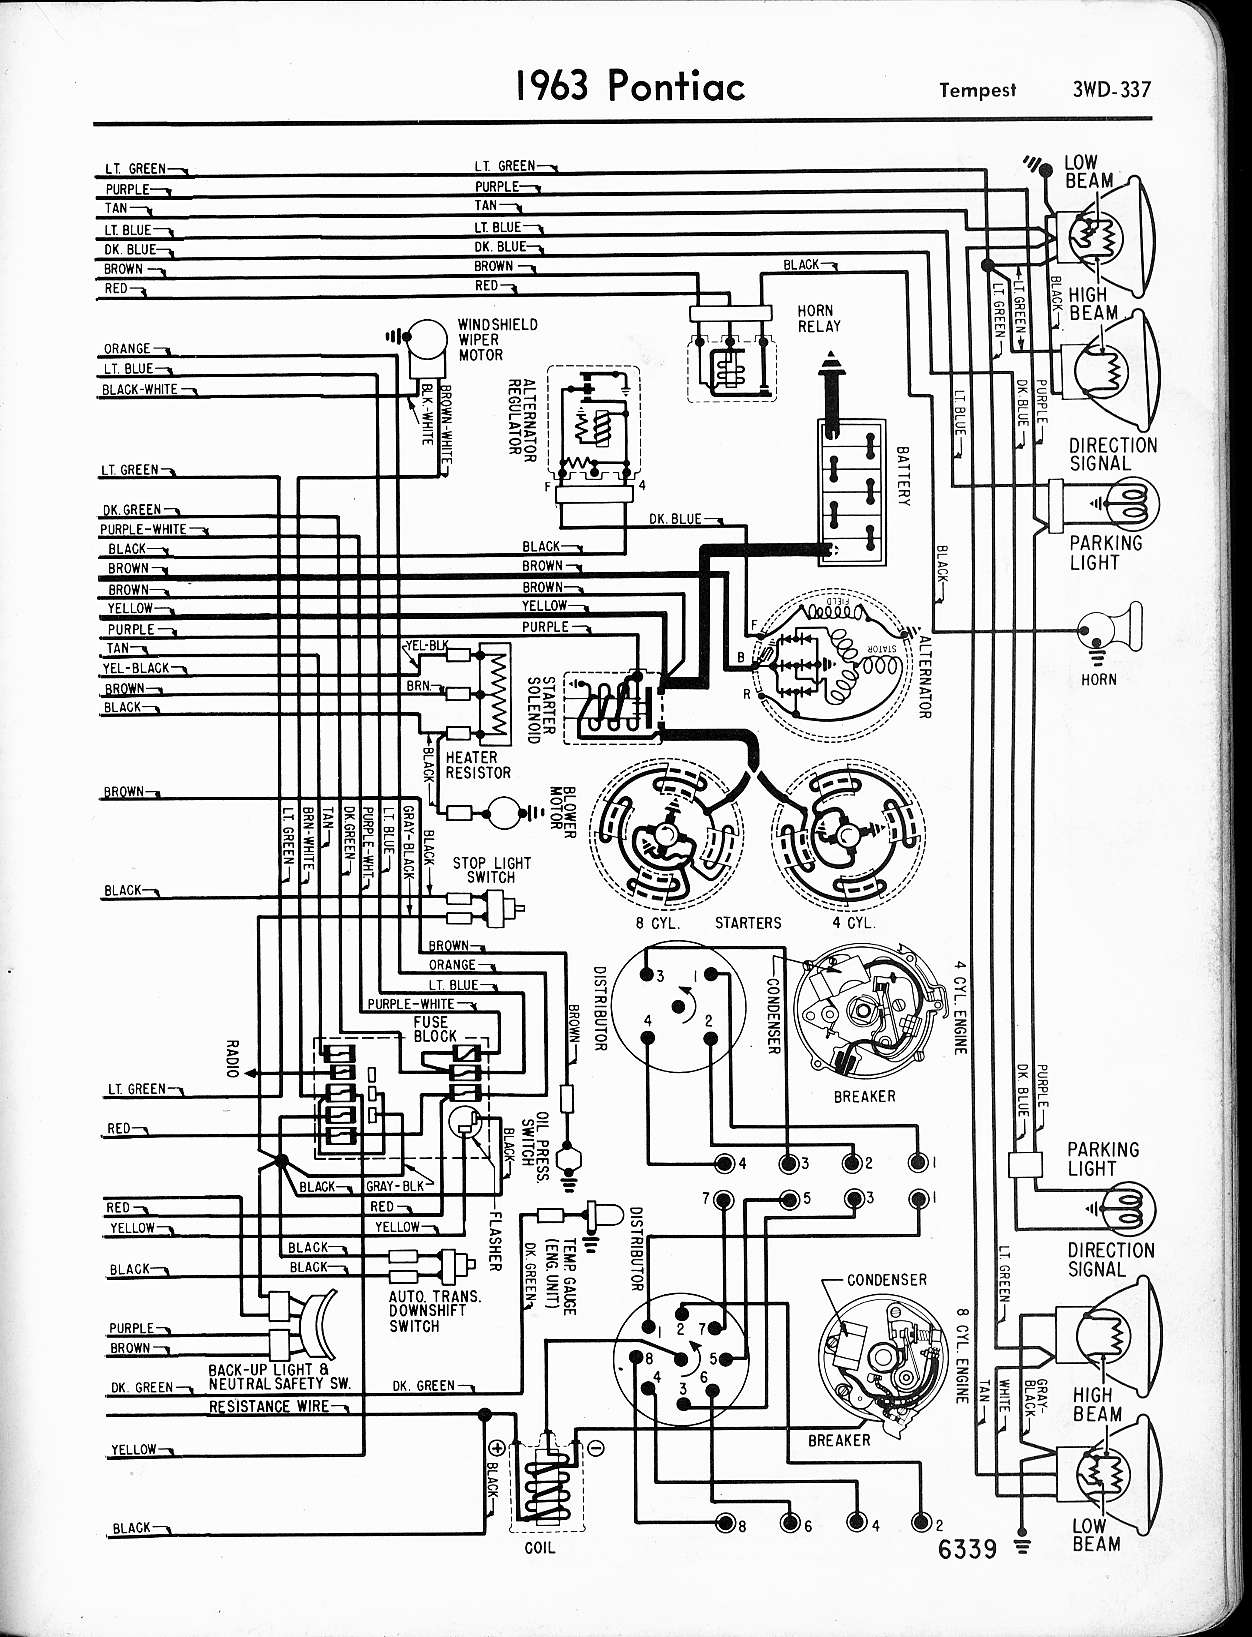 kawasaki klr 250 wiring diagram free download best wiring library  oldsmobile engine schematics